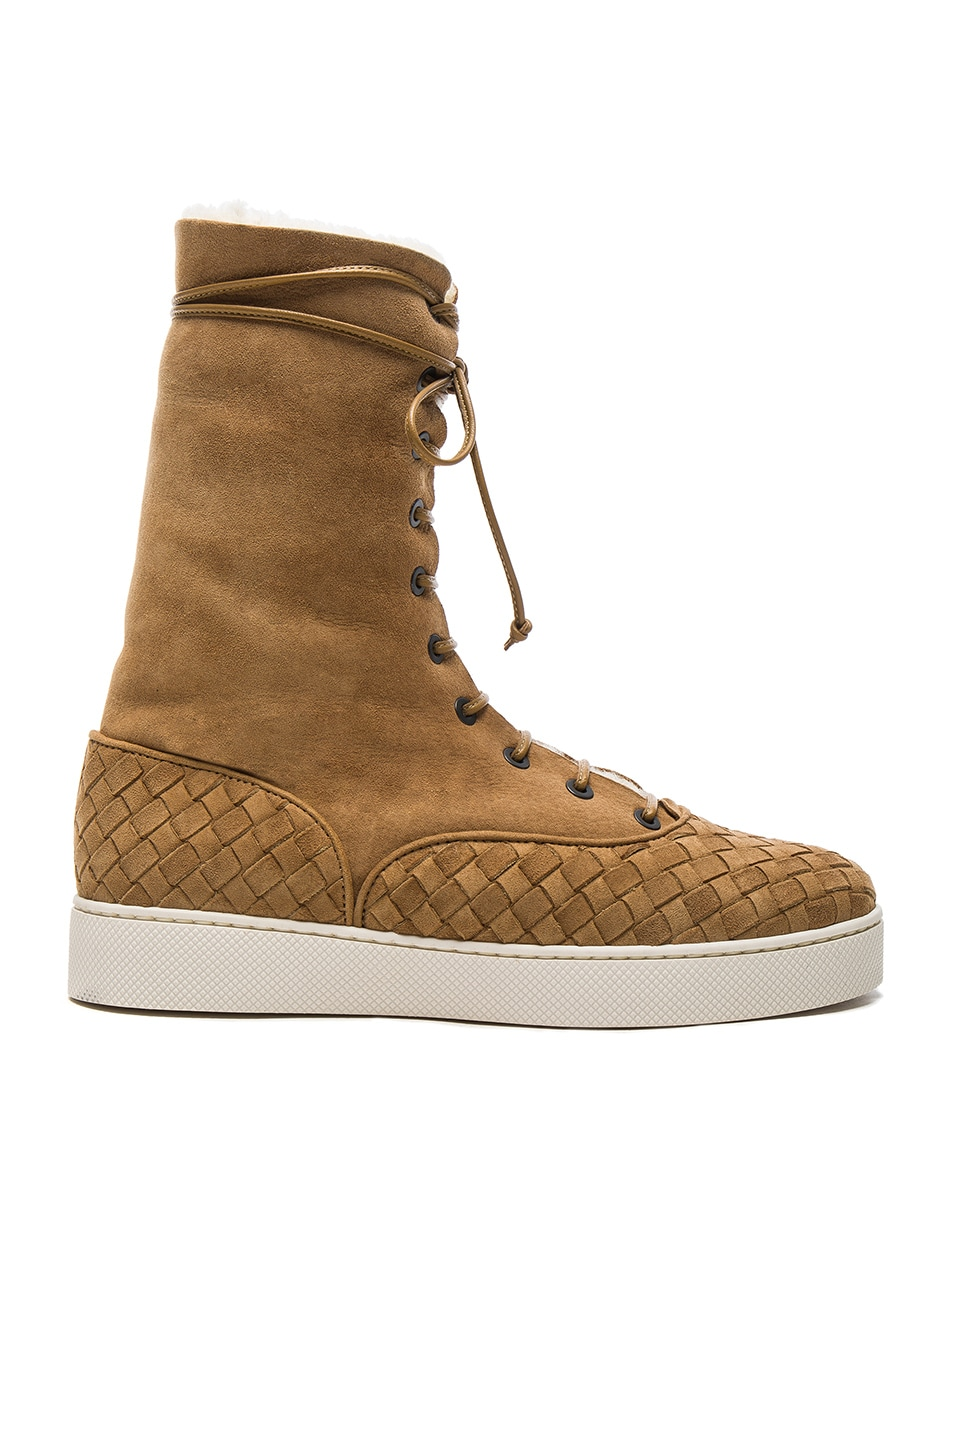 Image 1 of Bottega Veneta Suede Lace Up Boots in Camel